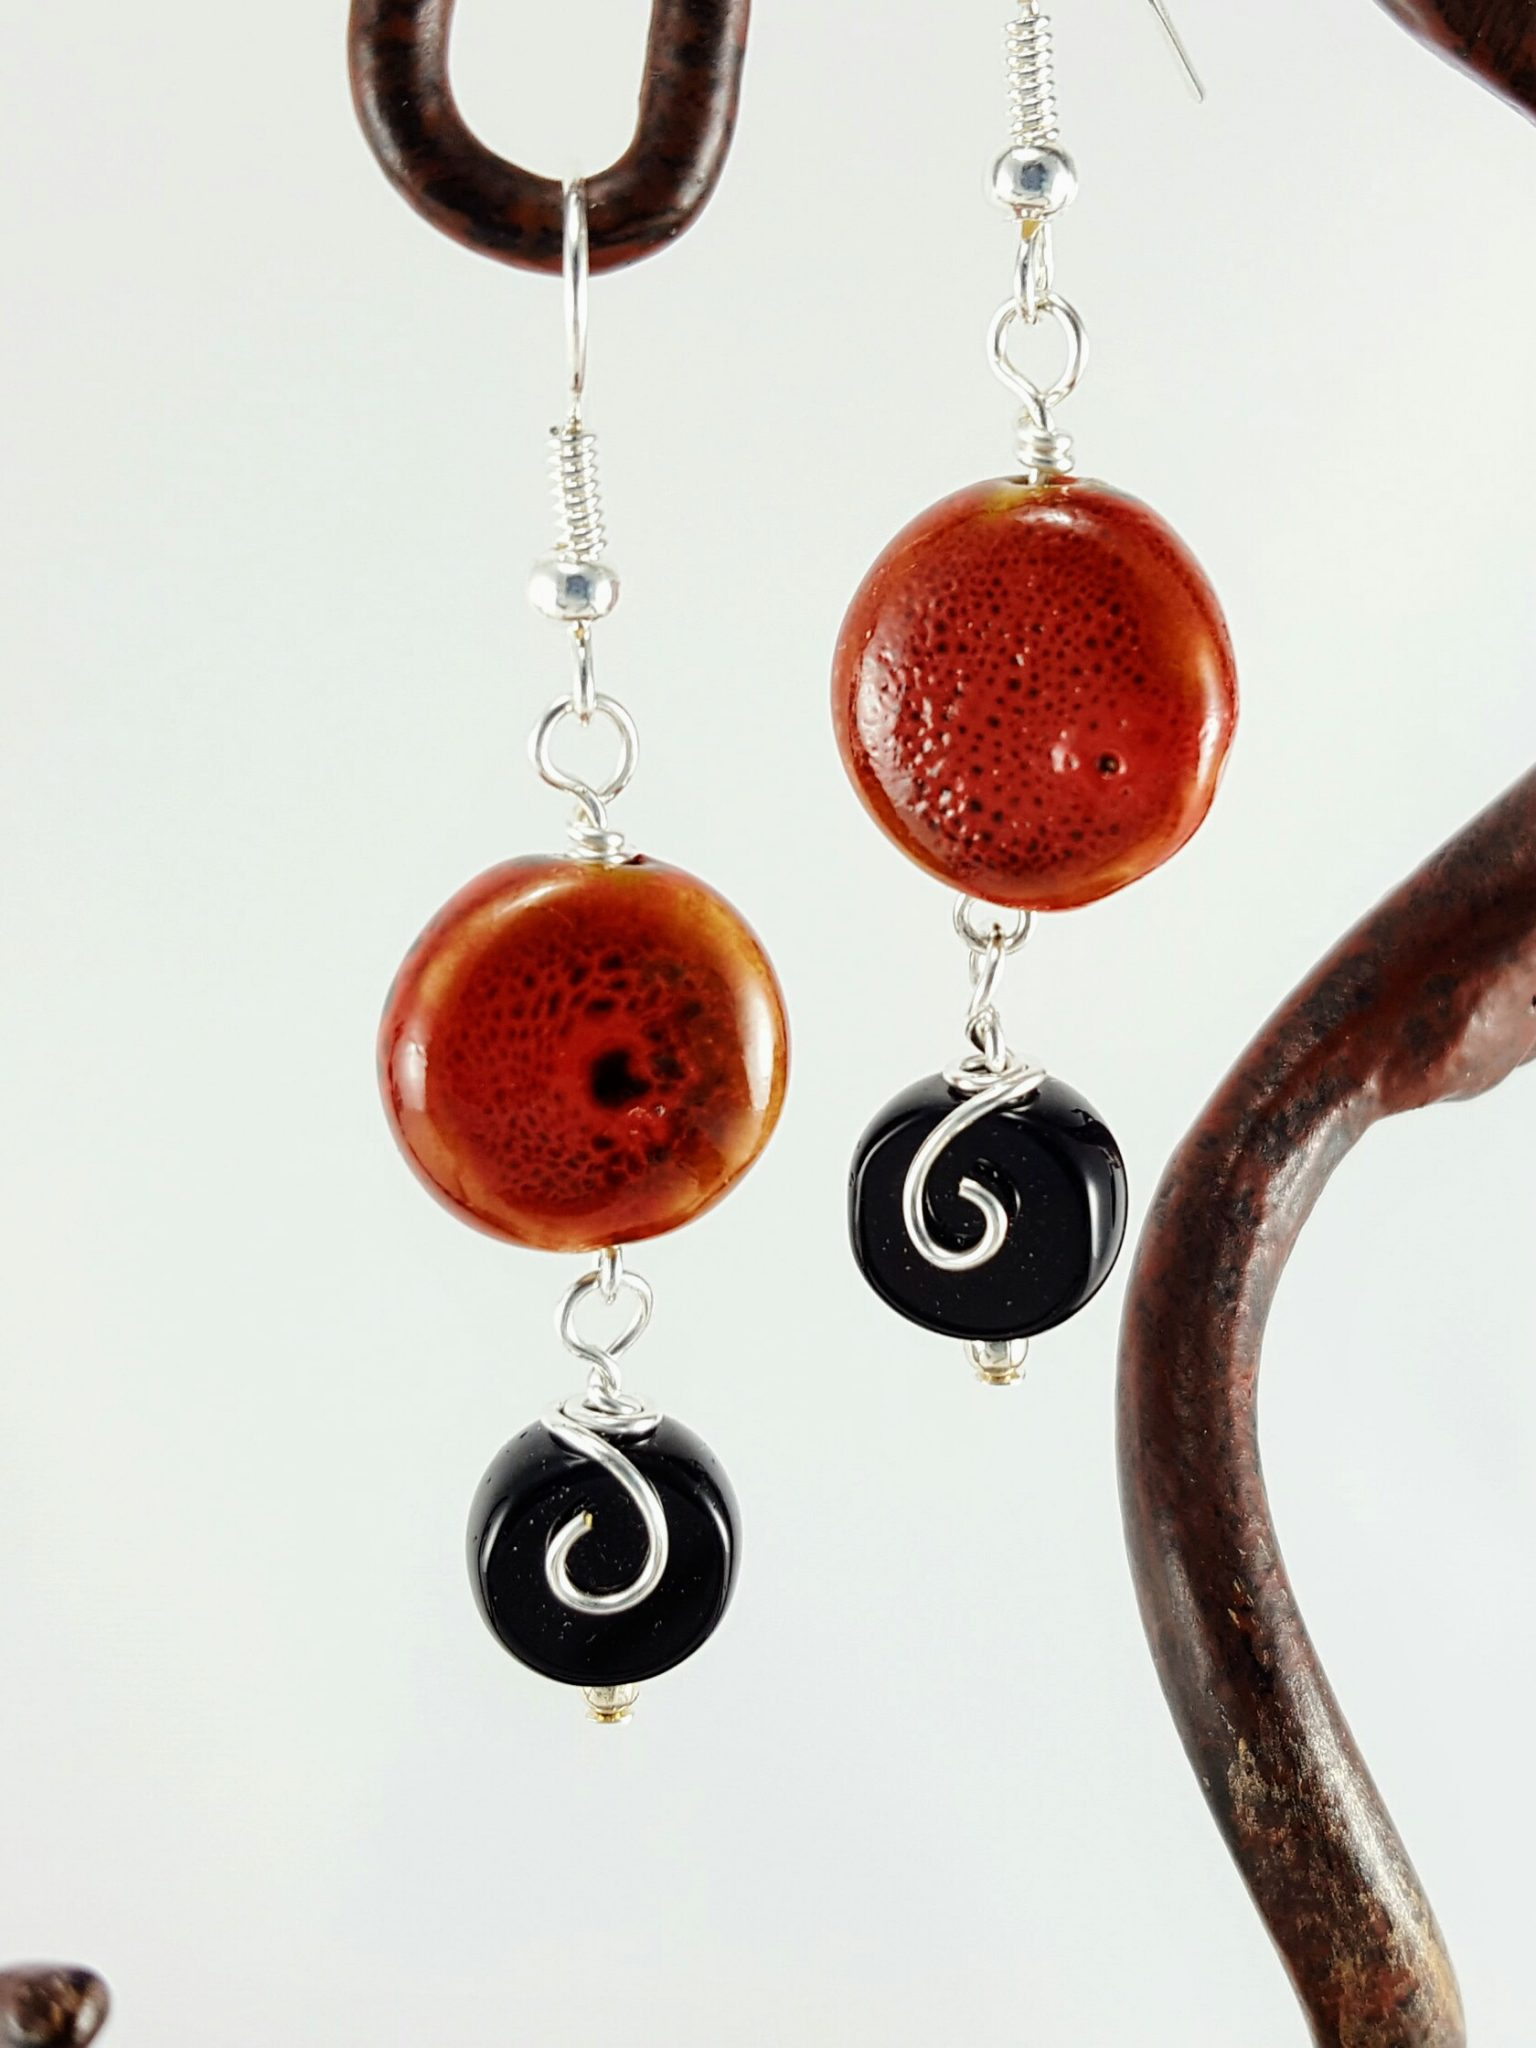 onyx coral at j chain jewelry hook gold cvoral earring and black of dangle master karat pearl earrings id mother with